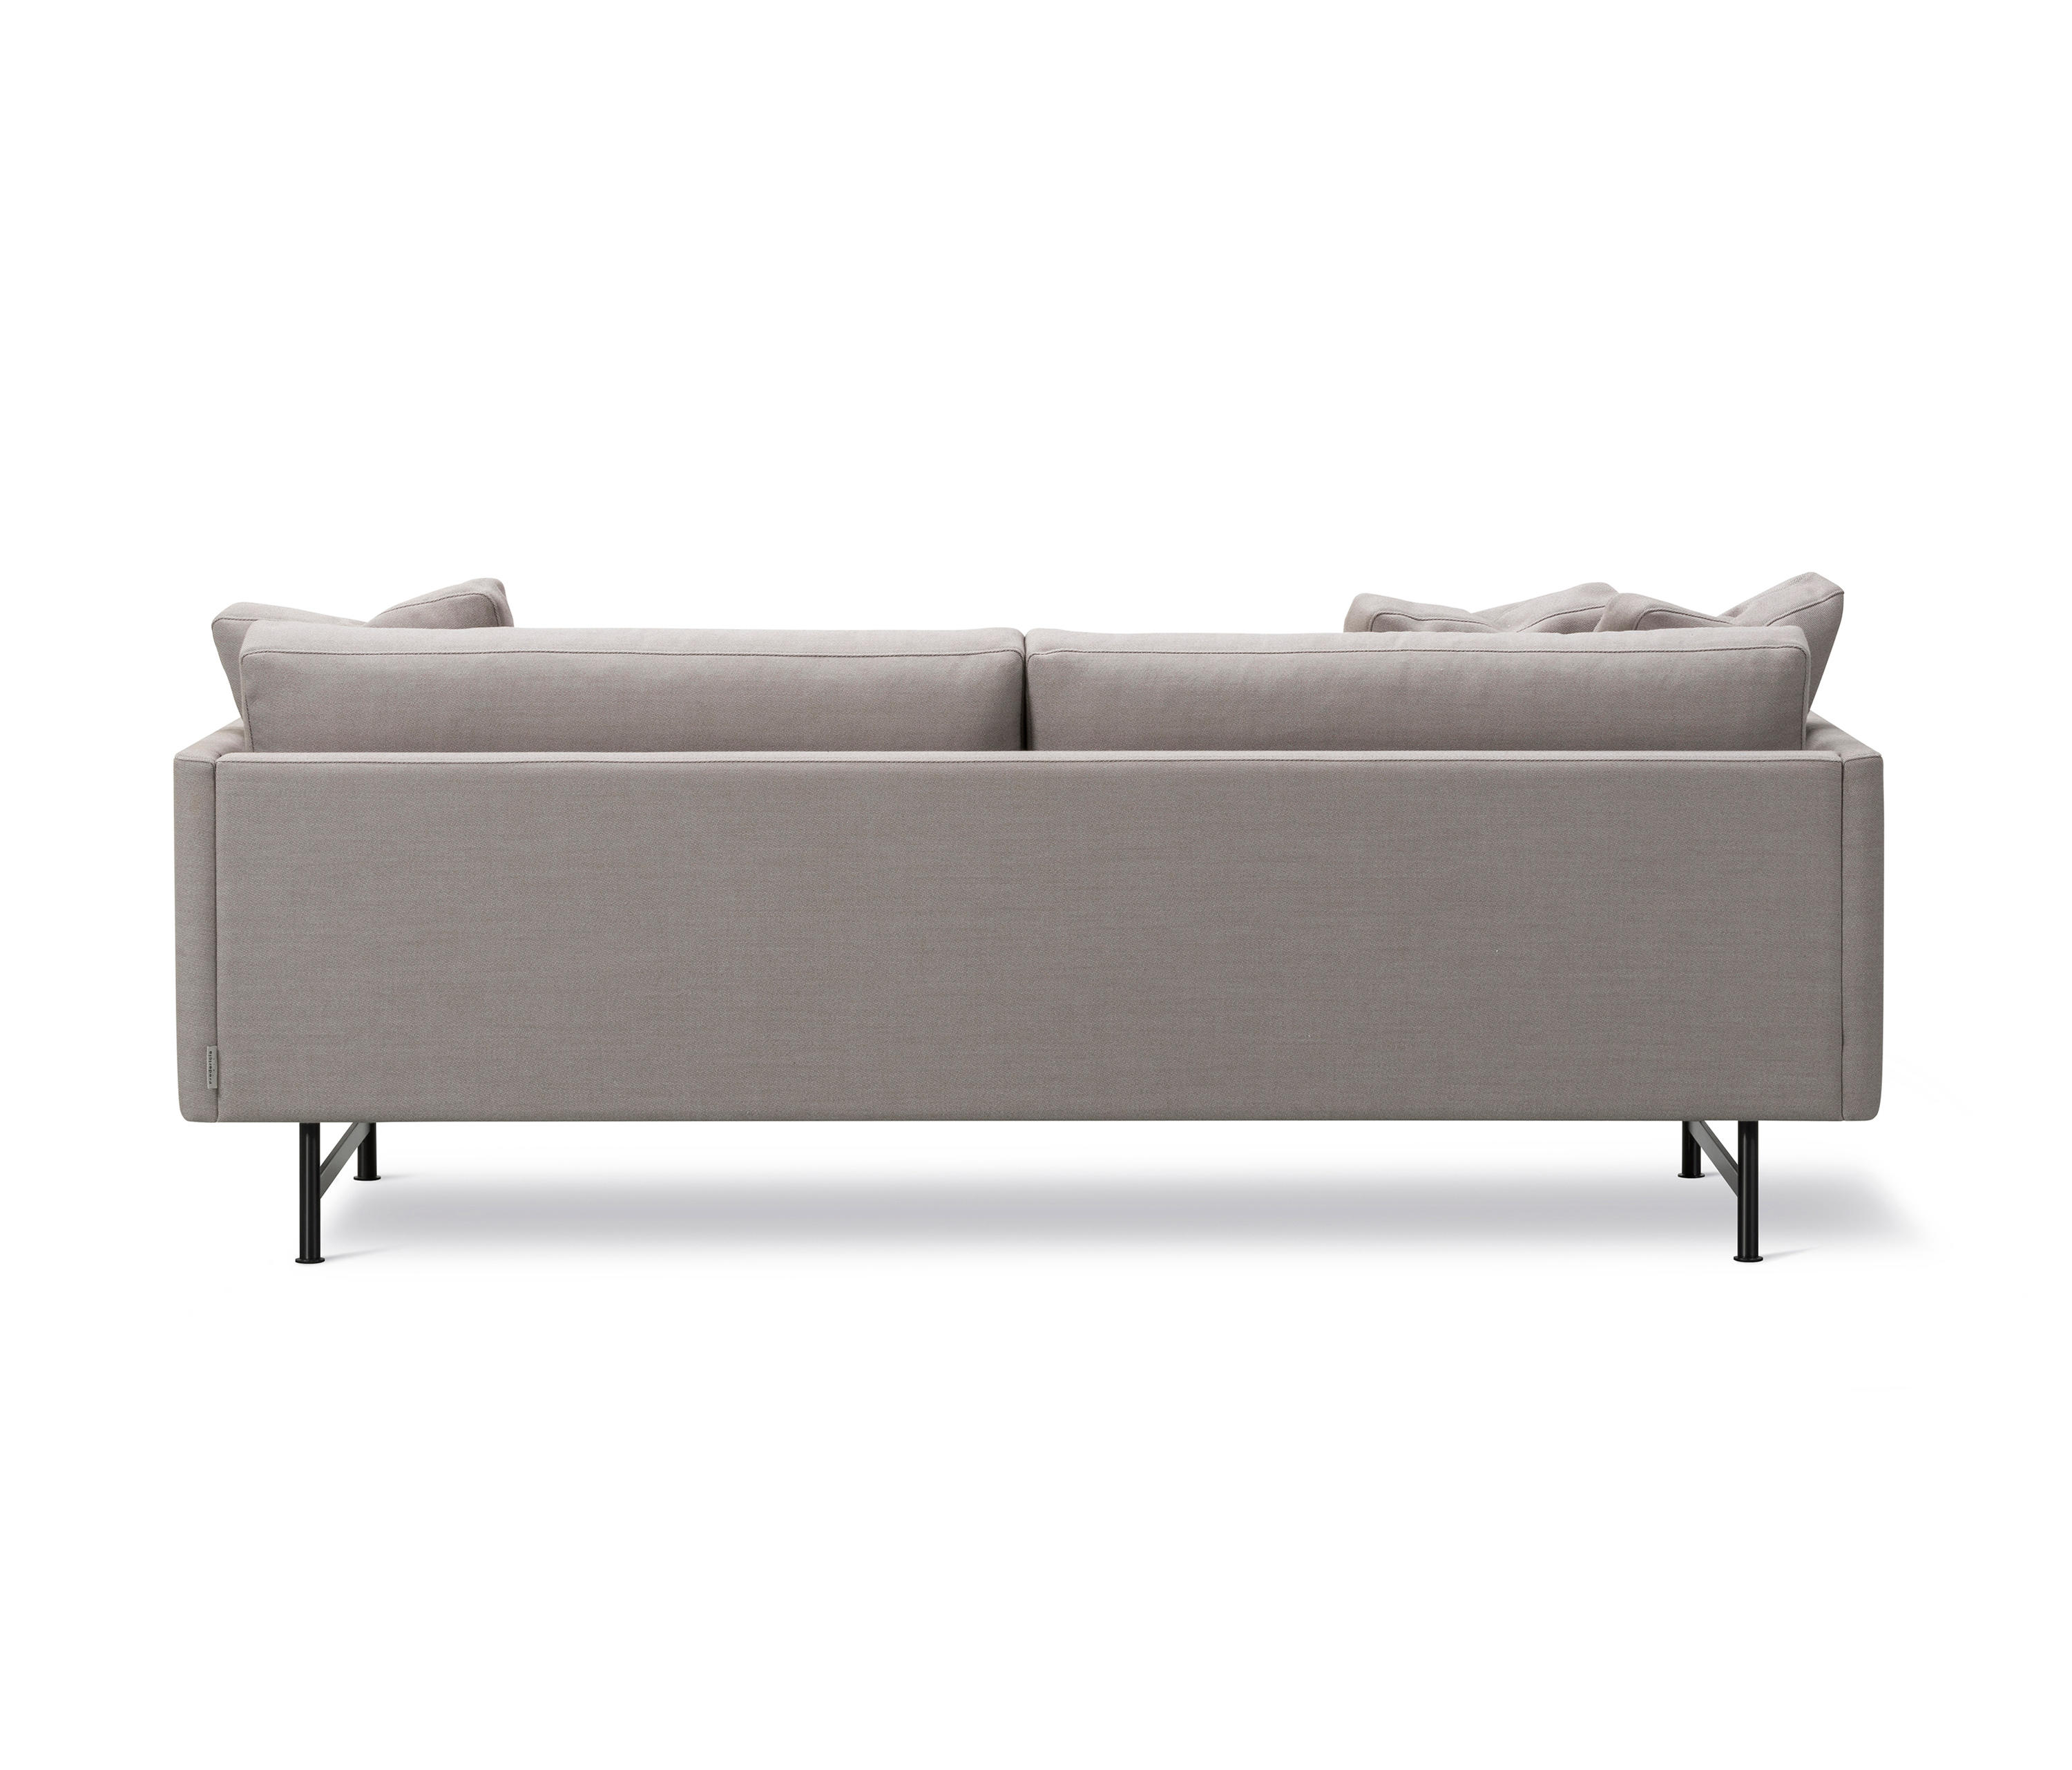 Base Metal From 2 Calmo Fredericia Furniture Sofas 95 Seater fyvg6Yb7